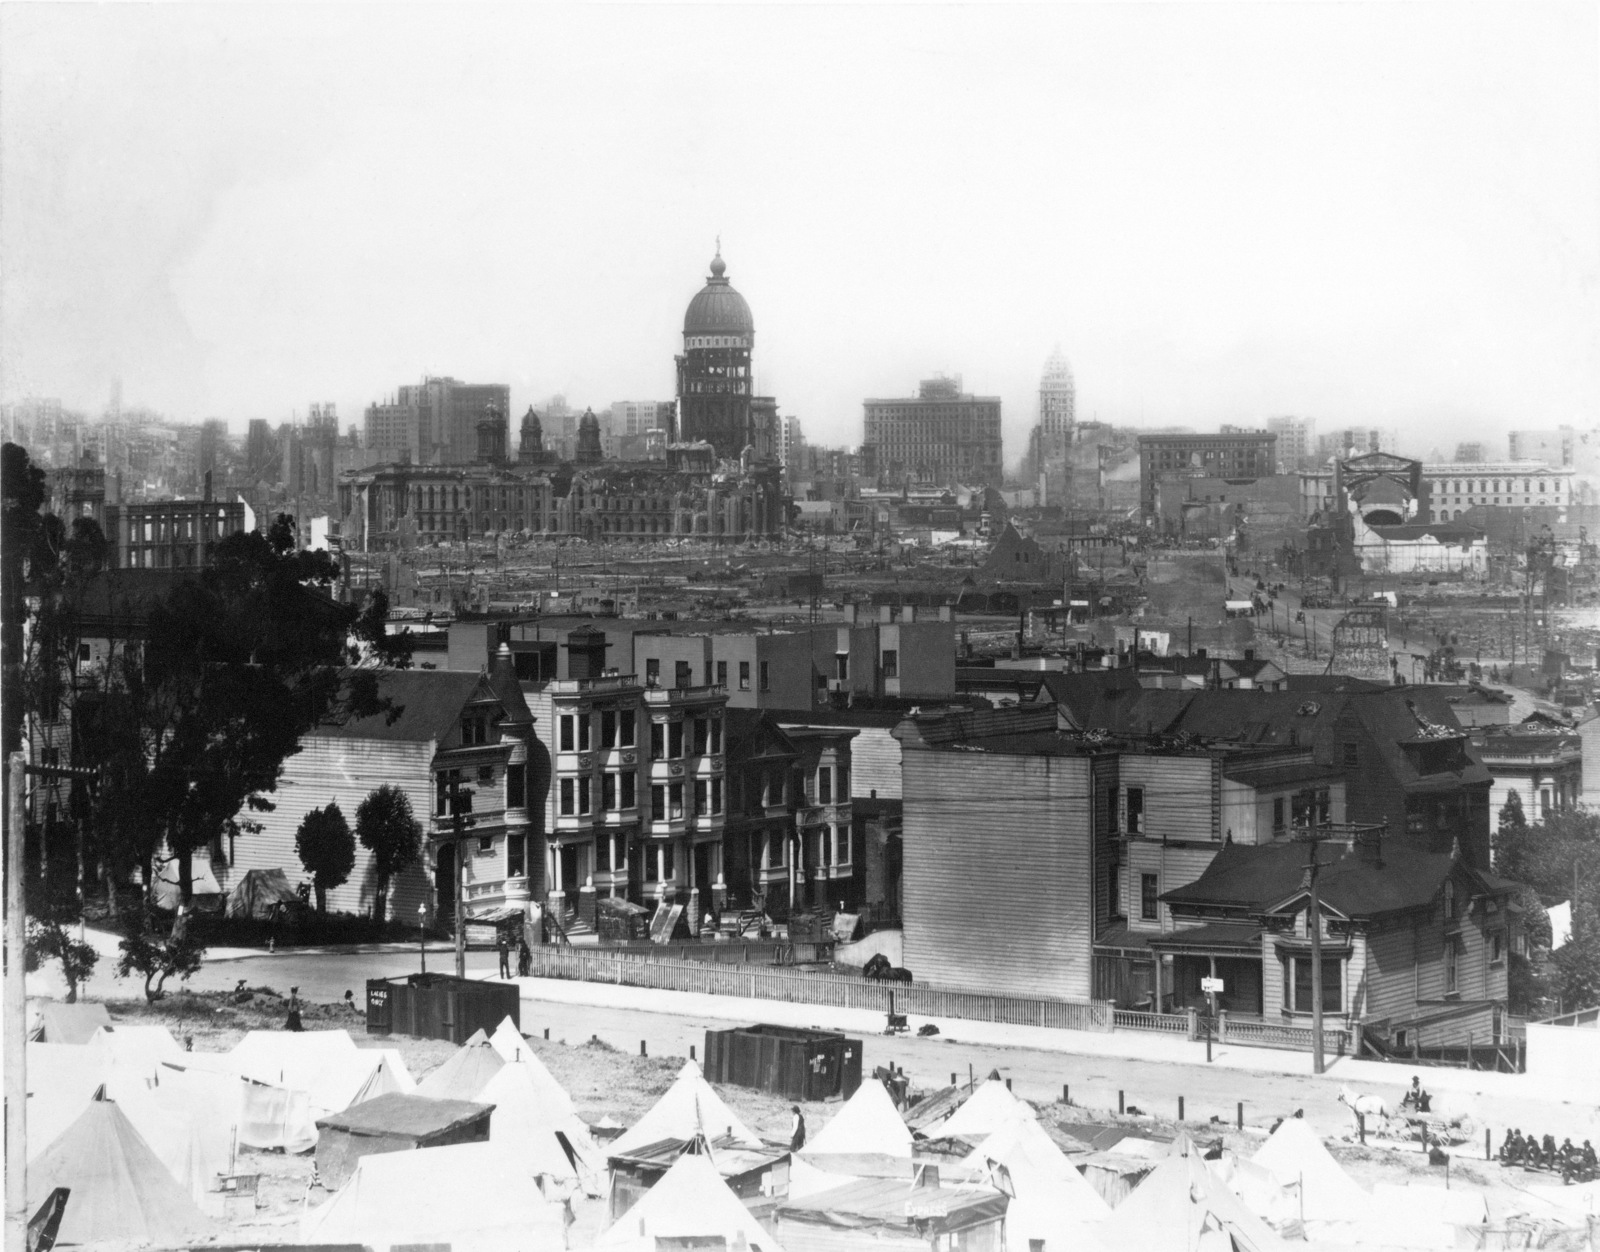 Refugee camp overlooks the damaged city of San Francisco. This camp might be on Mission Dolores Park. Note the Ladies and Mens facilities. In the distance are domes of the City Hall (left) and the Call Building (right). On April 18, 1906 at 5:15 AM a quake of 8.25 on the Richter scale hit San Francisco. Greater destruction came from the fires afterwards. The city burned for three days. The combination destroyed 490 city blocks and 25,000 buildings, leaving 250,000 homeless and killing between 450 and 700. Estimated damages, over $350 million